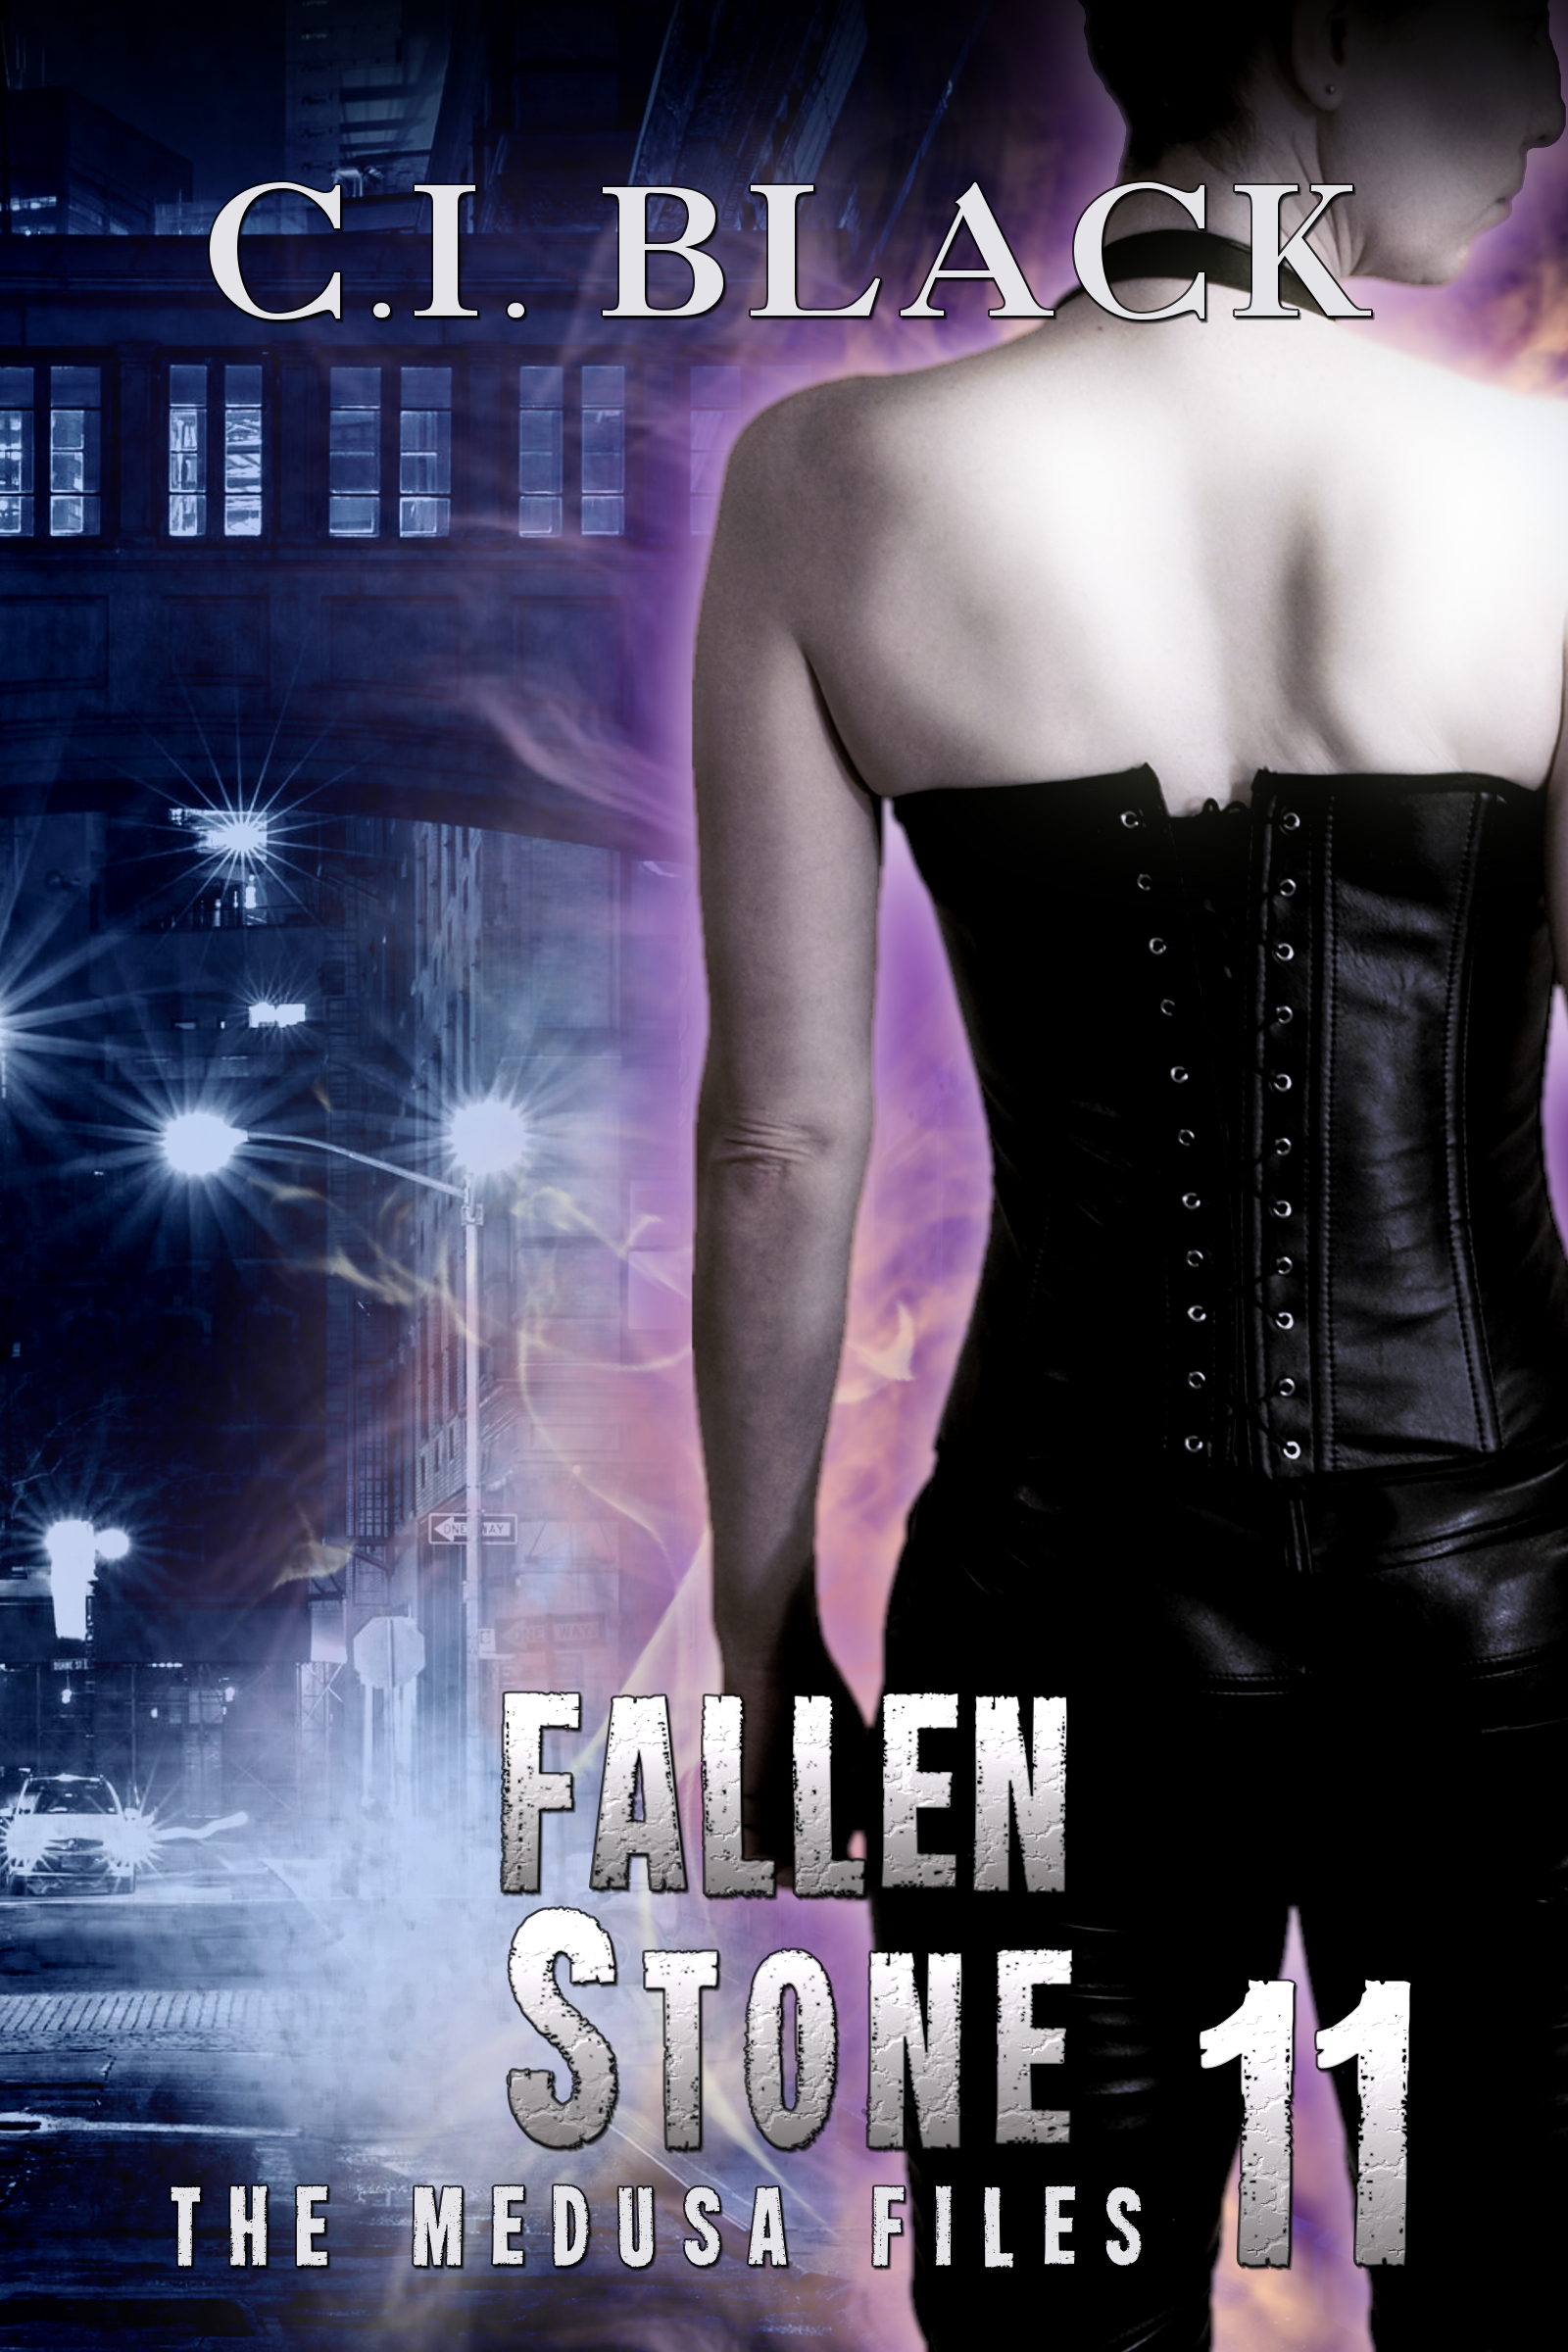 The Medusa Files, case 11: Fallen Stone, an urban fantasy / paranormal romance and the eleventh book in the Medusa Files series by C.I. Black